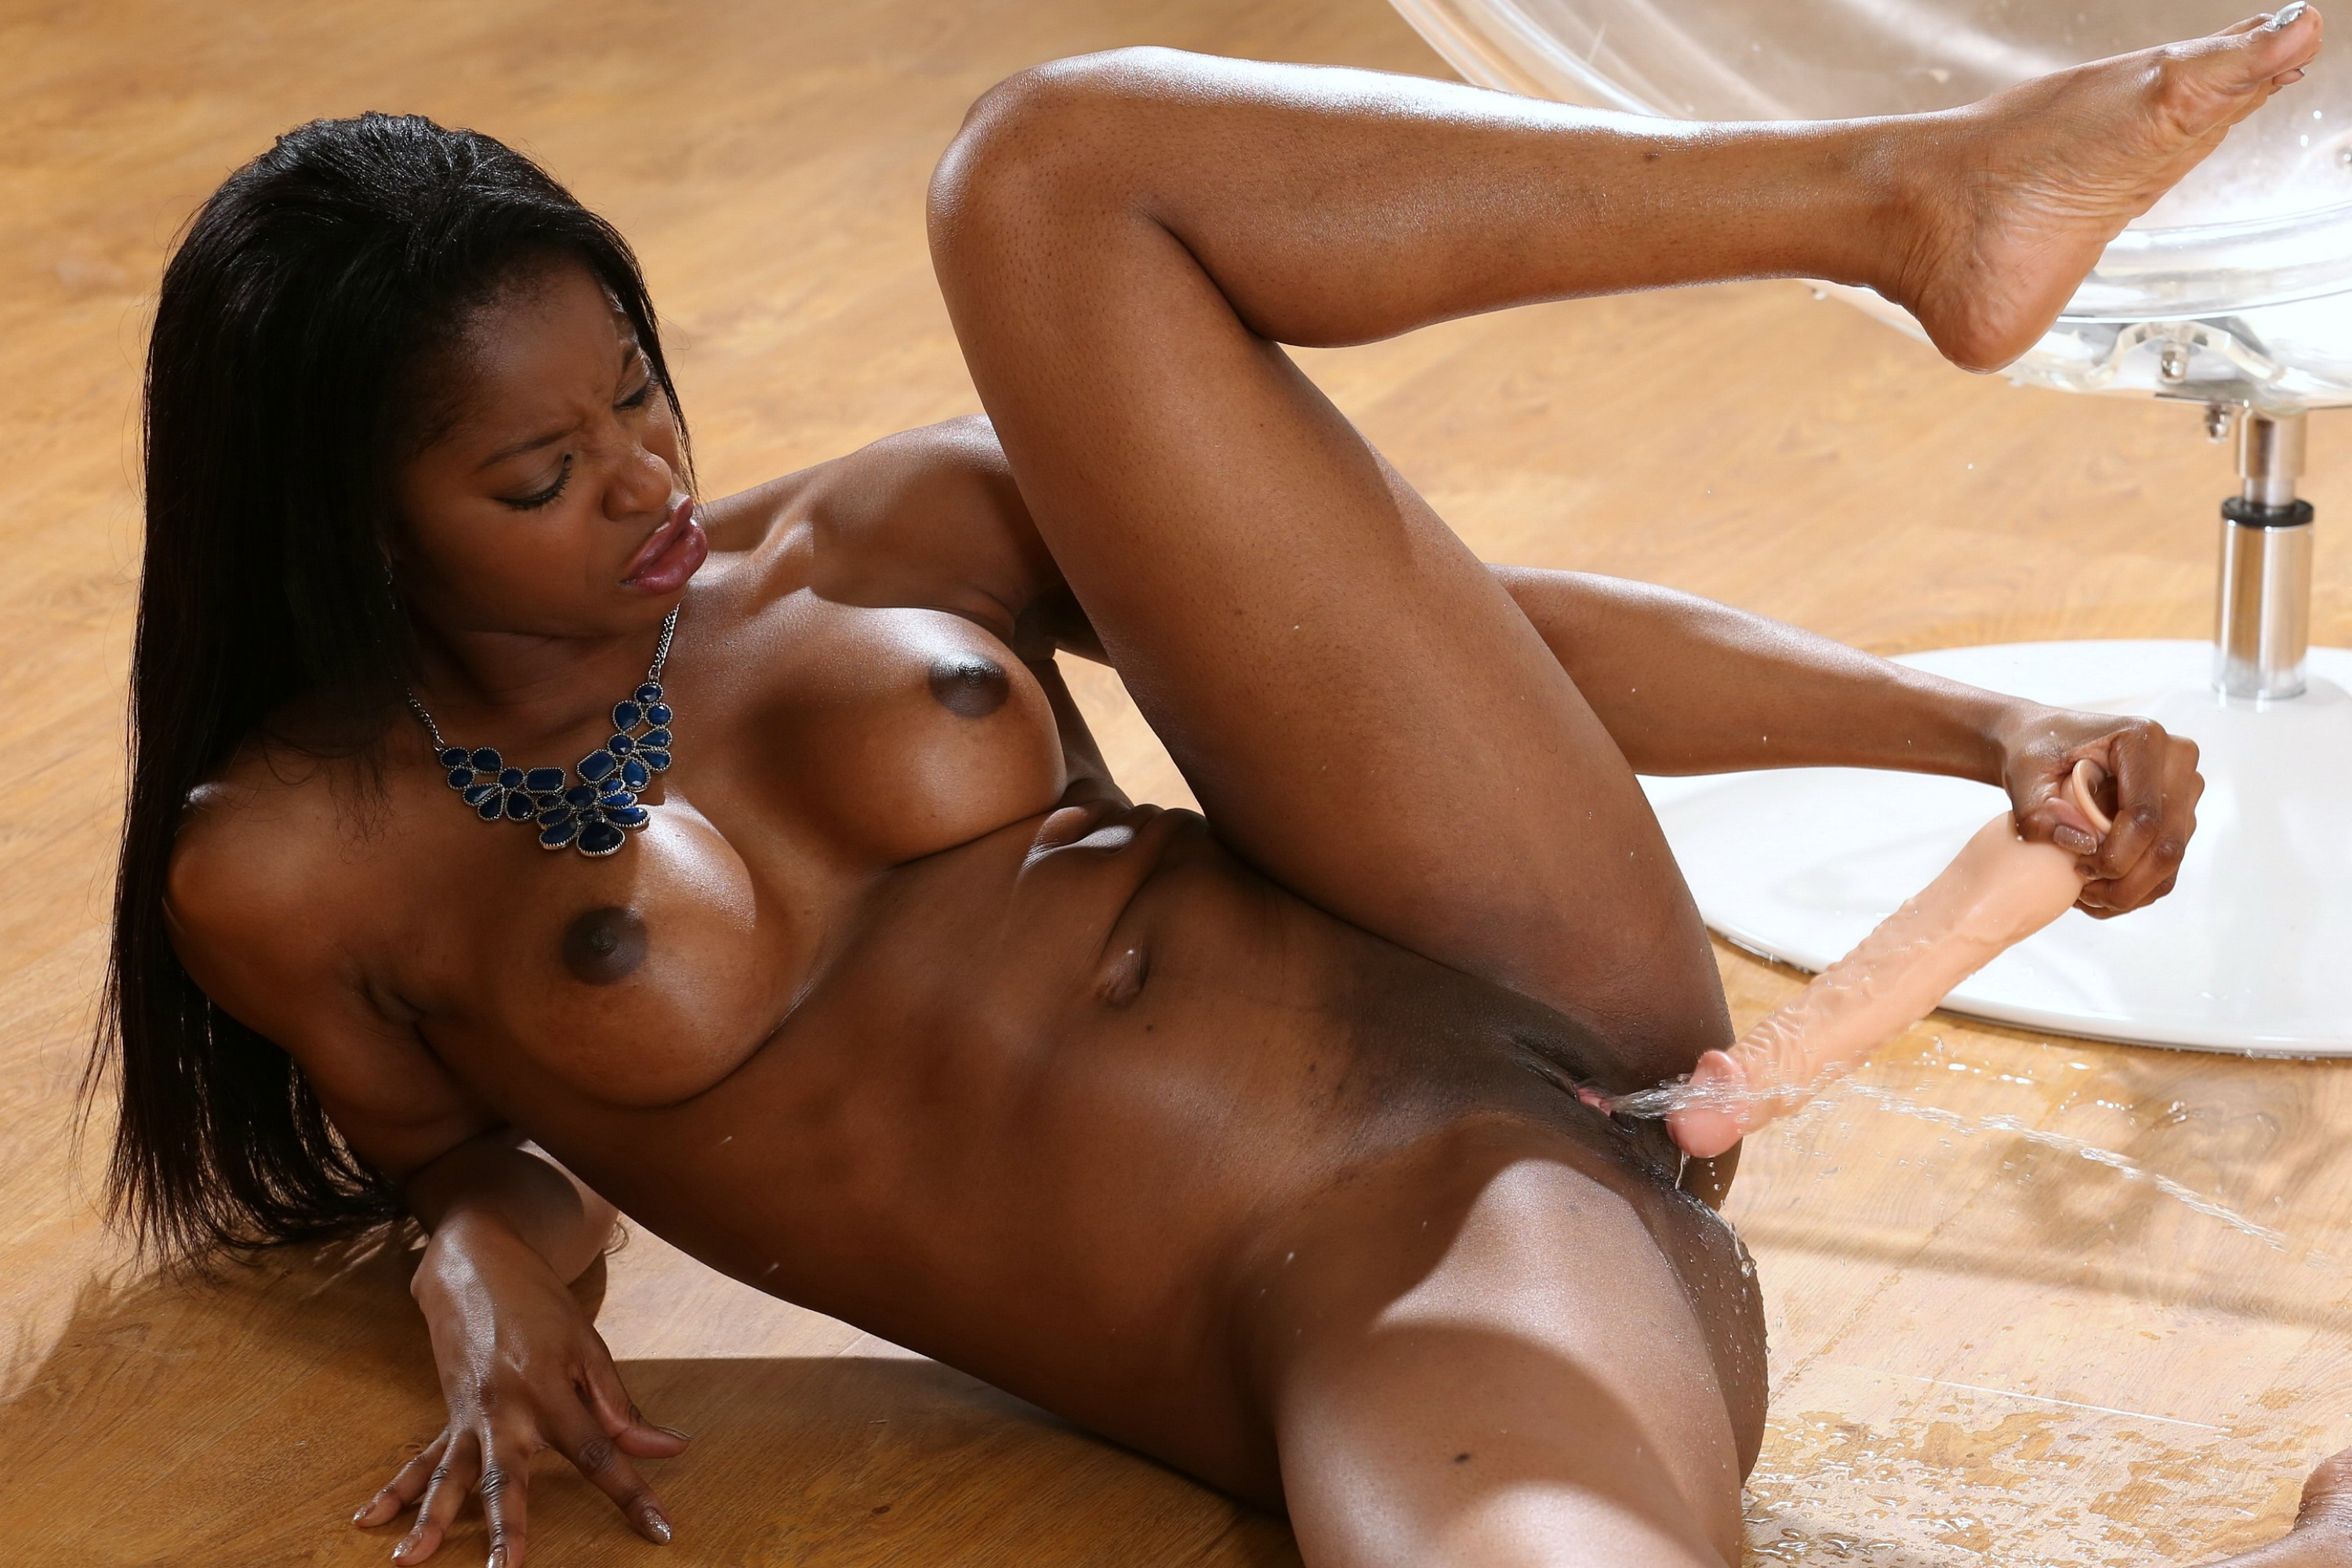 Naked black girl porn star — photo 9